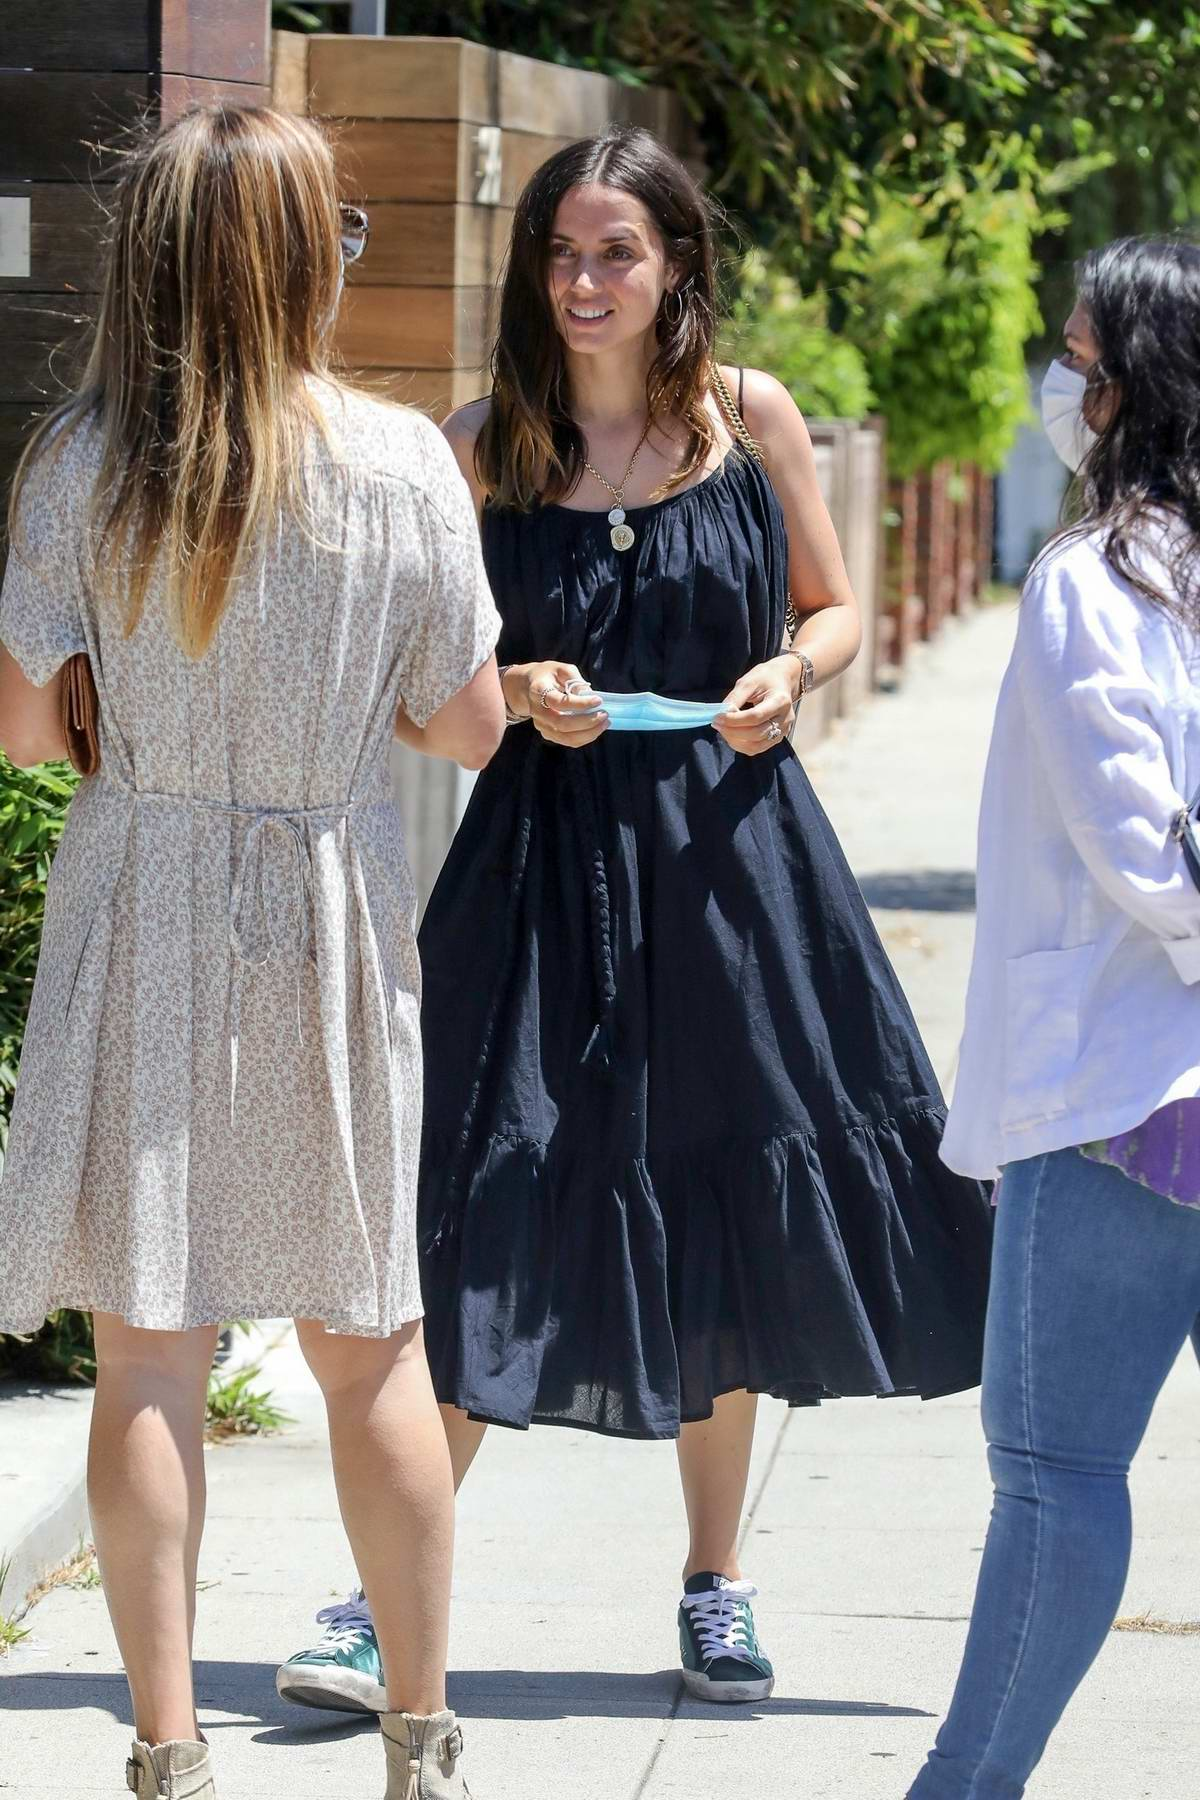 Ana de Armas and Ben Affleck stop by a friend's place ahead of the 4th of July weekend in Los Angeles